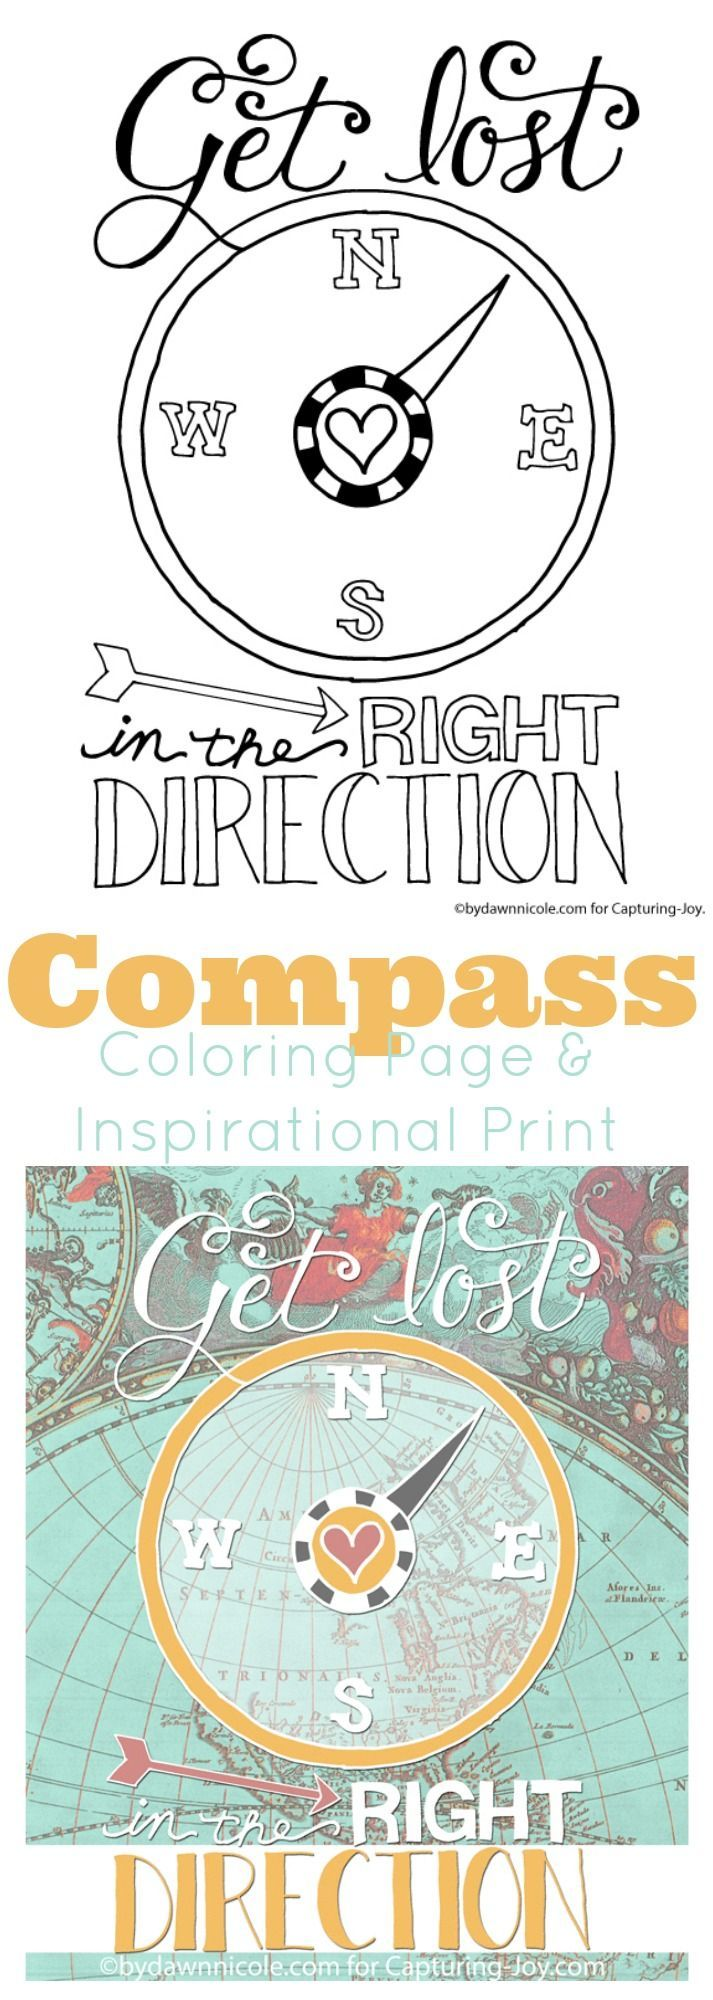 666 best free printables images on pinterest free printables